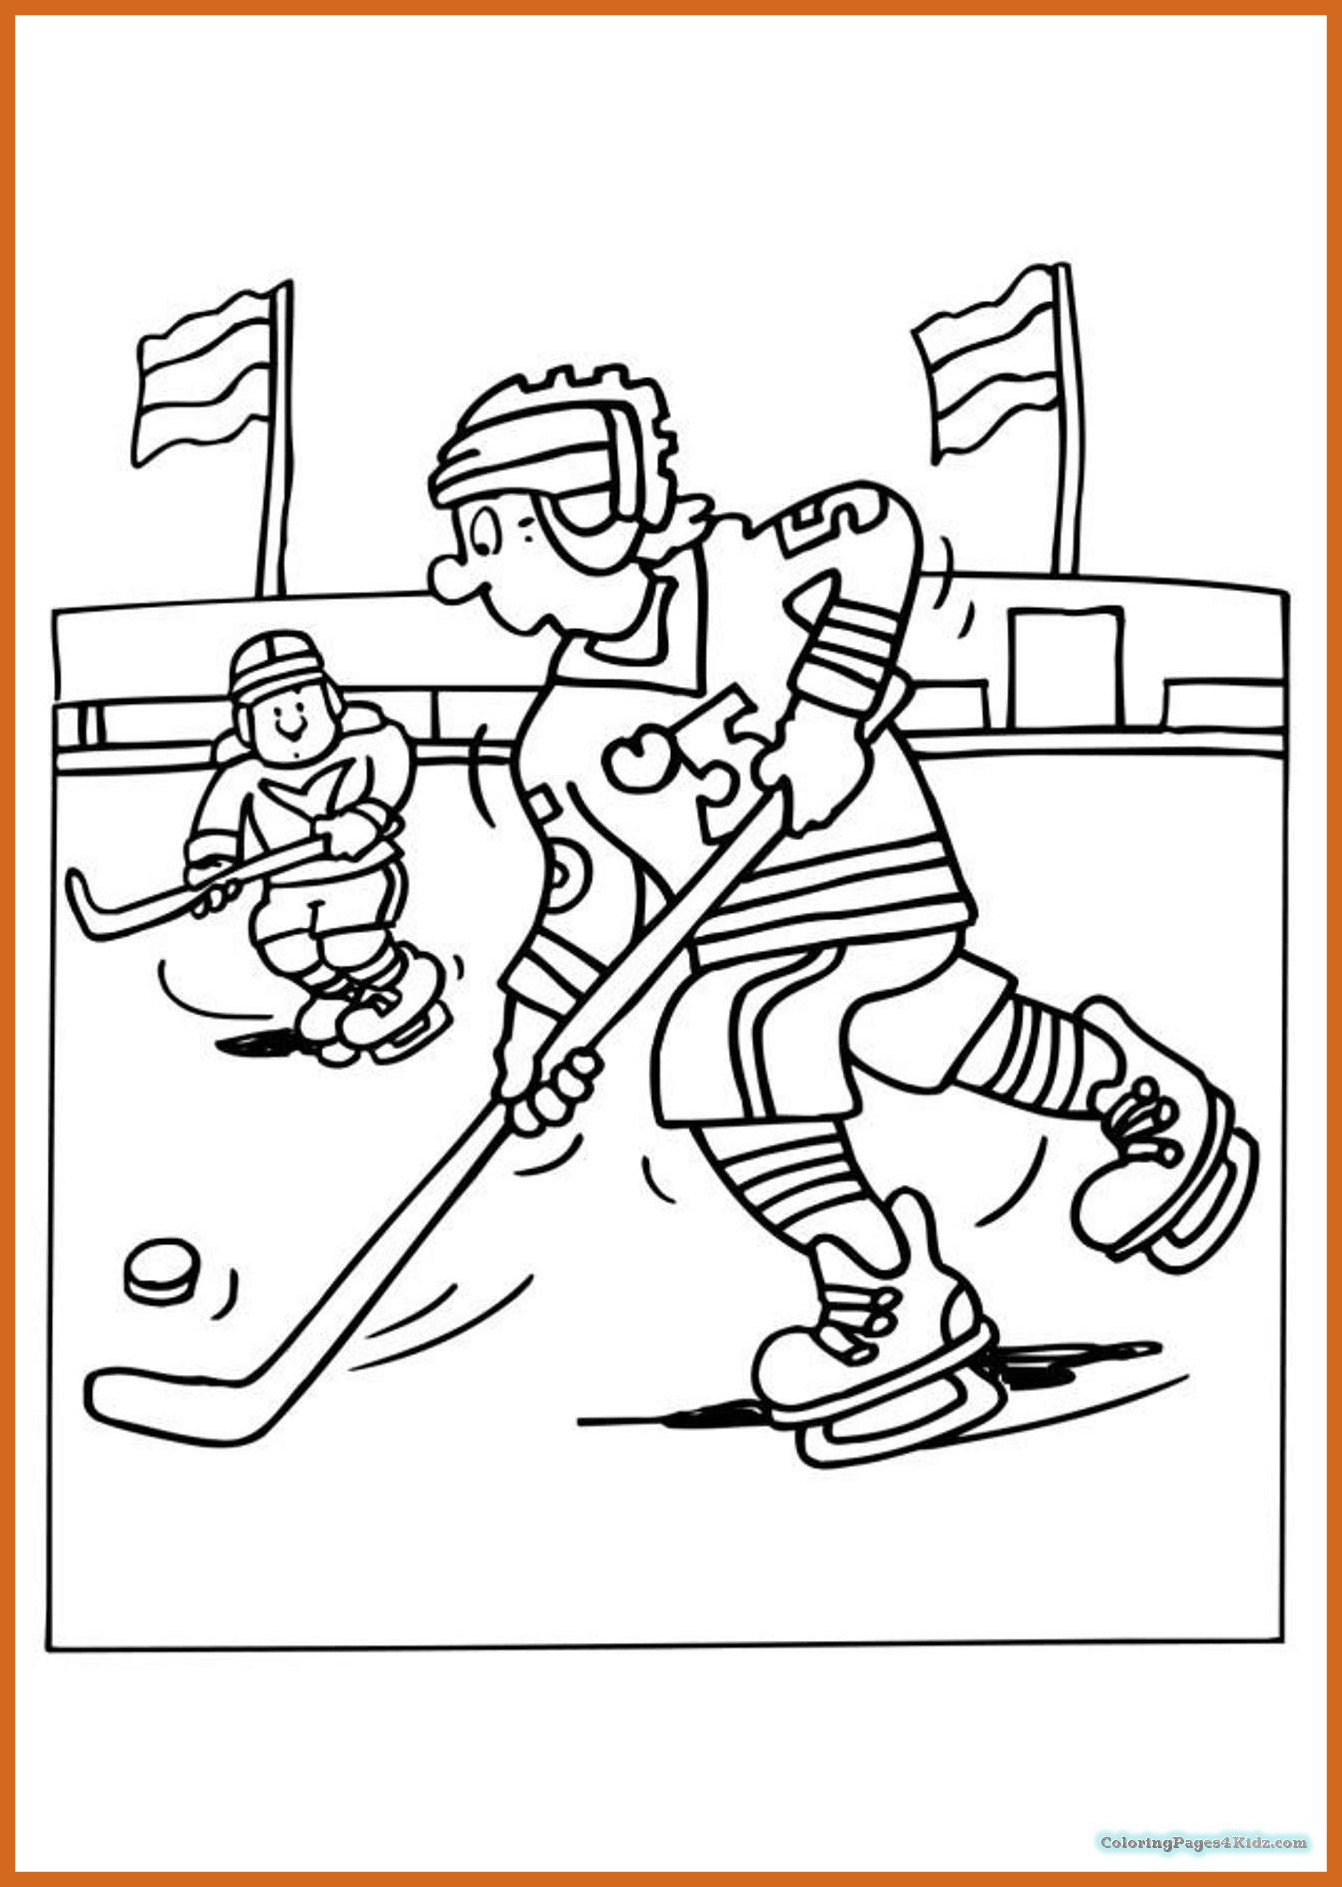 1342x1887 The Best Sports Coloring Book Pages Miss Adewa Af Of Seattle